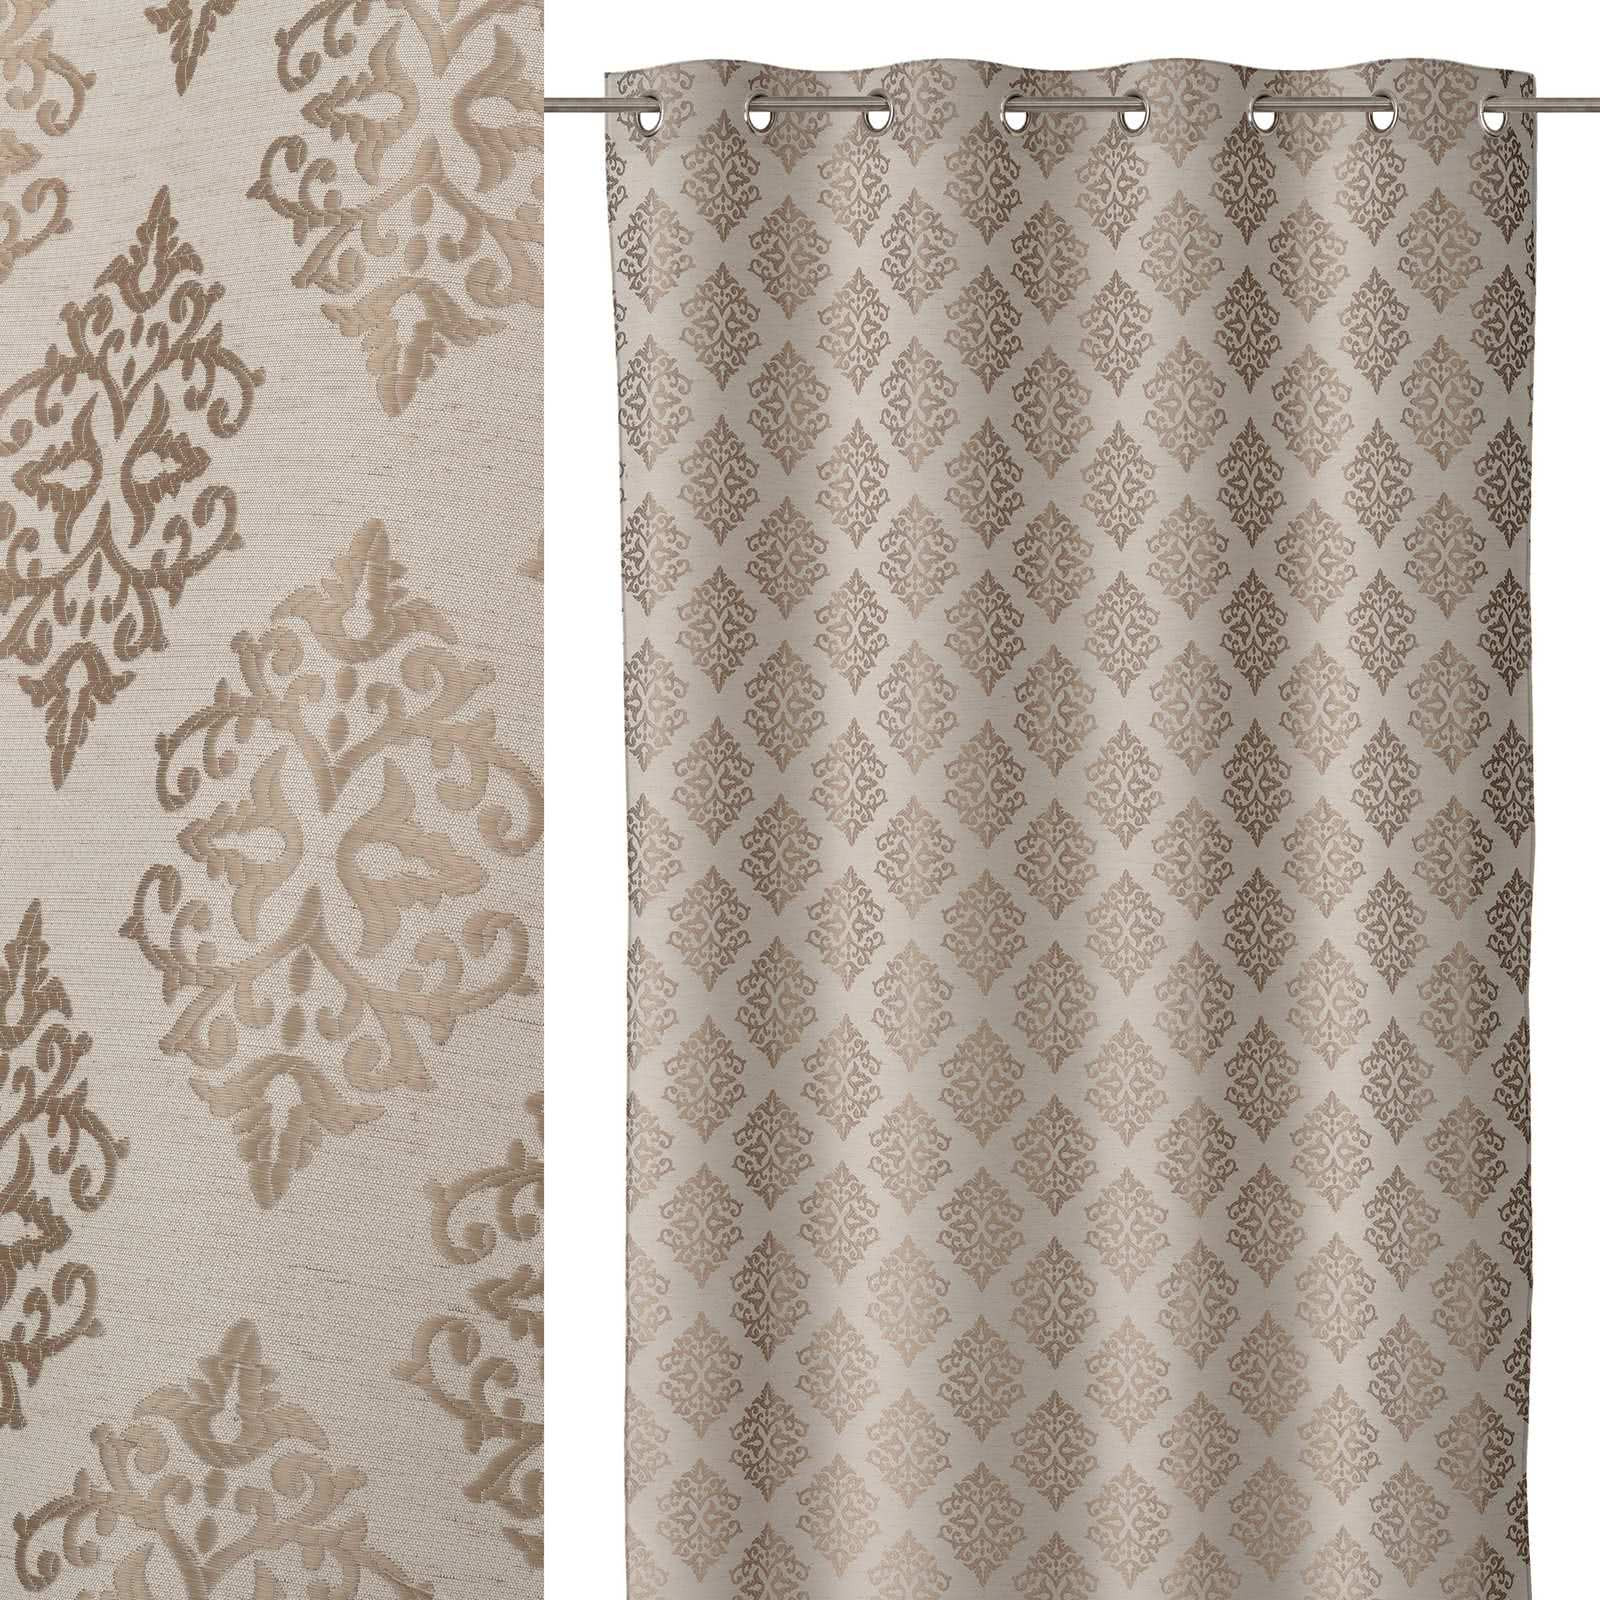 Cortina de 140x260 cl sico marr n de microfibra lola home for Cortinas salon marron